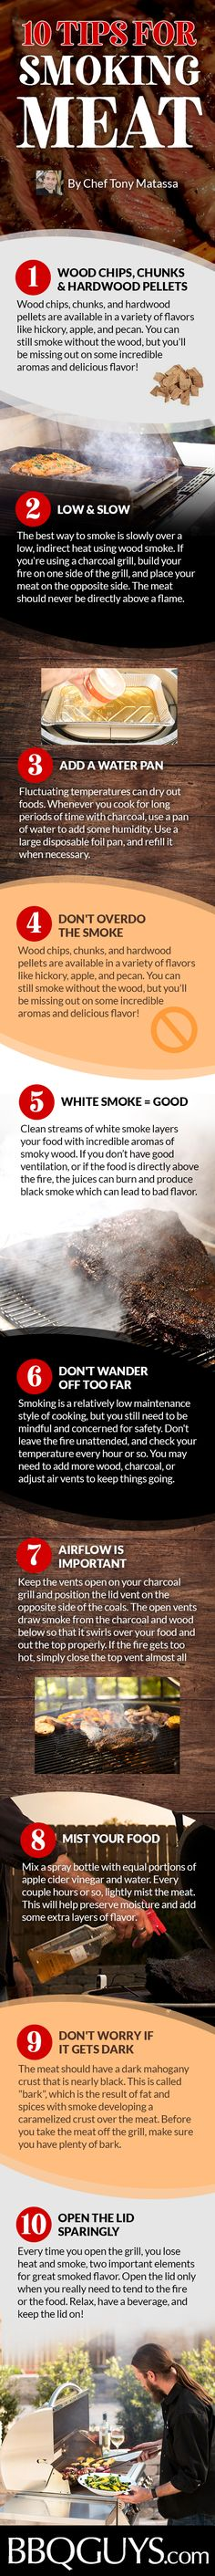 For the true BBQ lover, there is nothing better than slow-smoked meat off the grill. Incredible smoky wood aromas mixed with tender meat is a match made in heaven. Here's a few tips to get you started, try them out and your taste buds will thank you later. Happy Smoking!